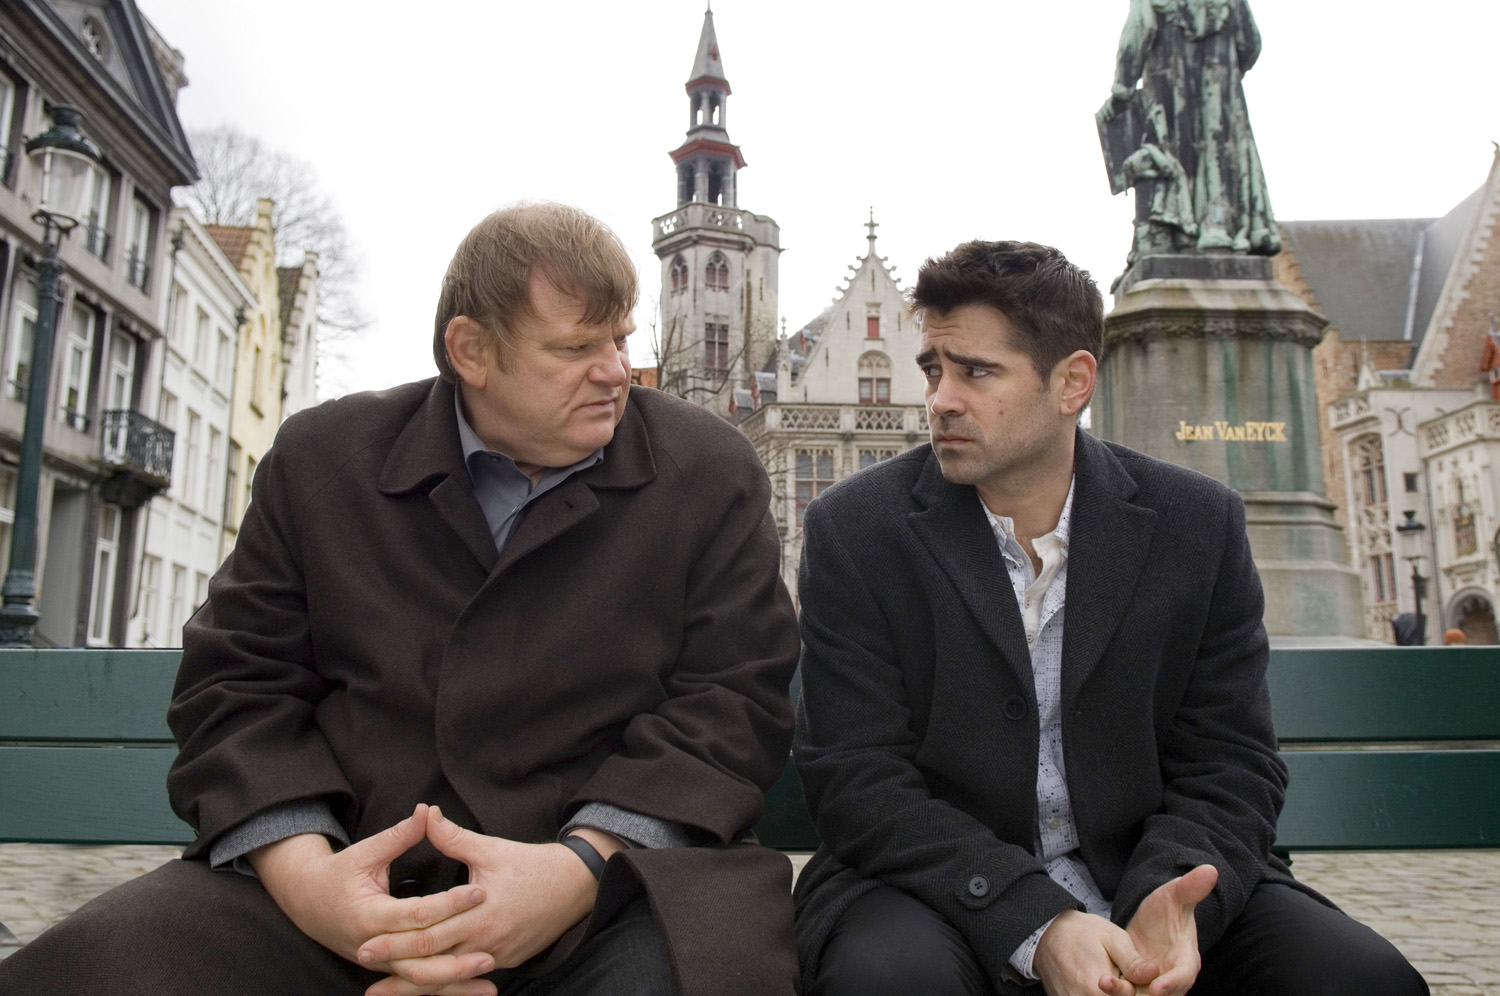 """Brendan Gleeson and Colin Farrell in the buddy movie """"In Bruges"""" from Focus Features."""